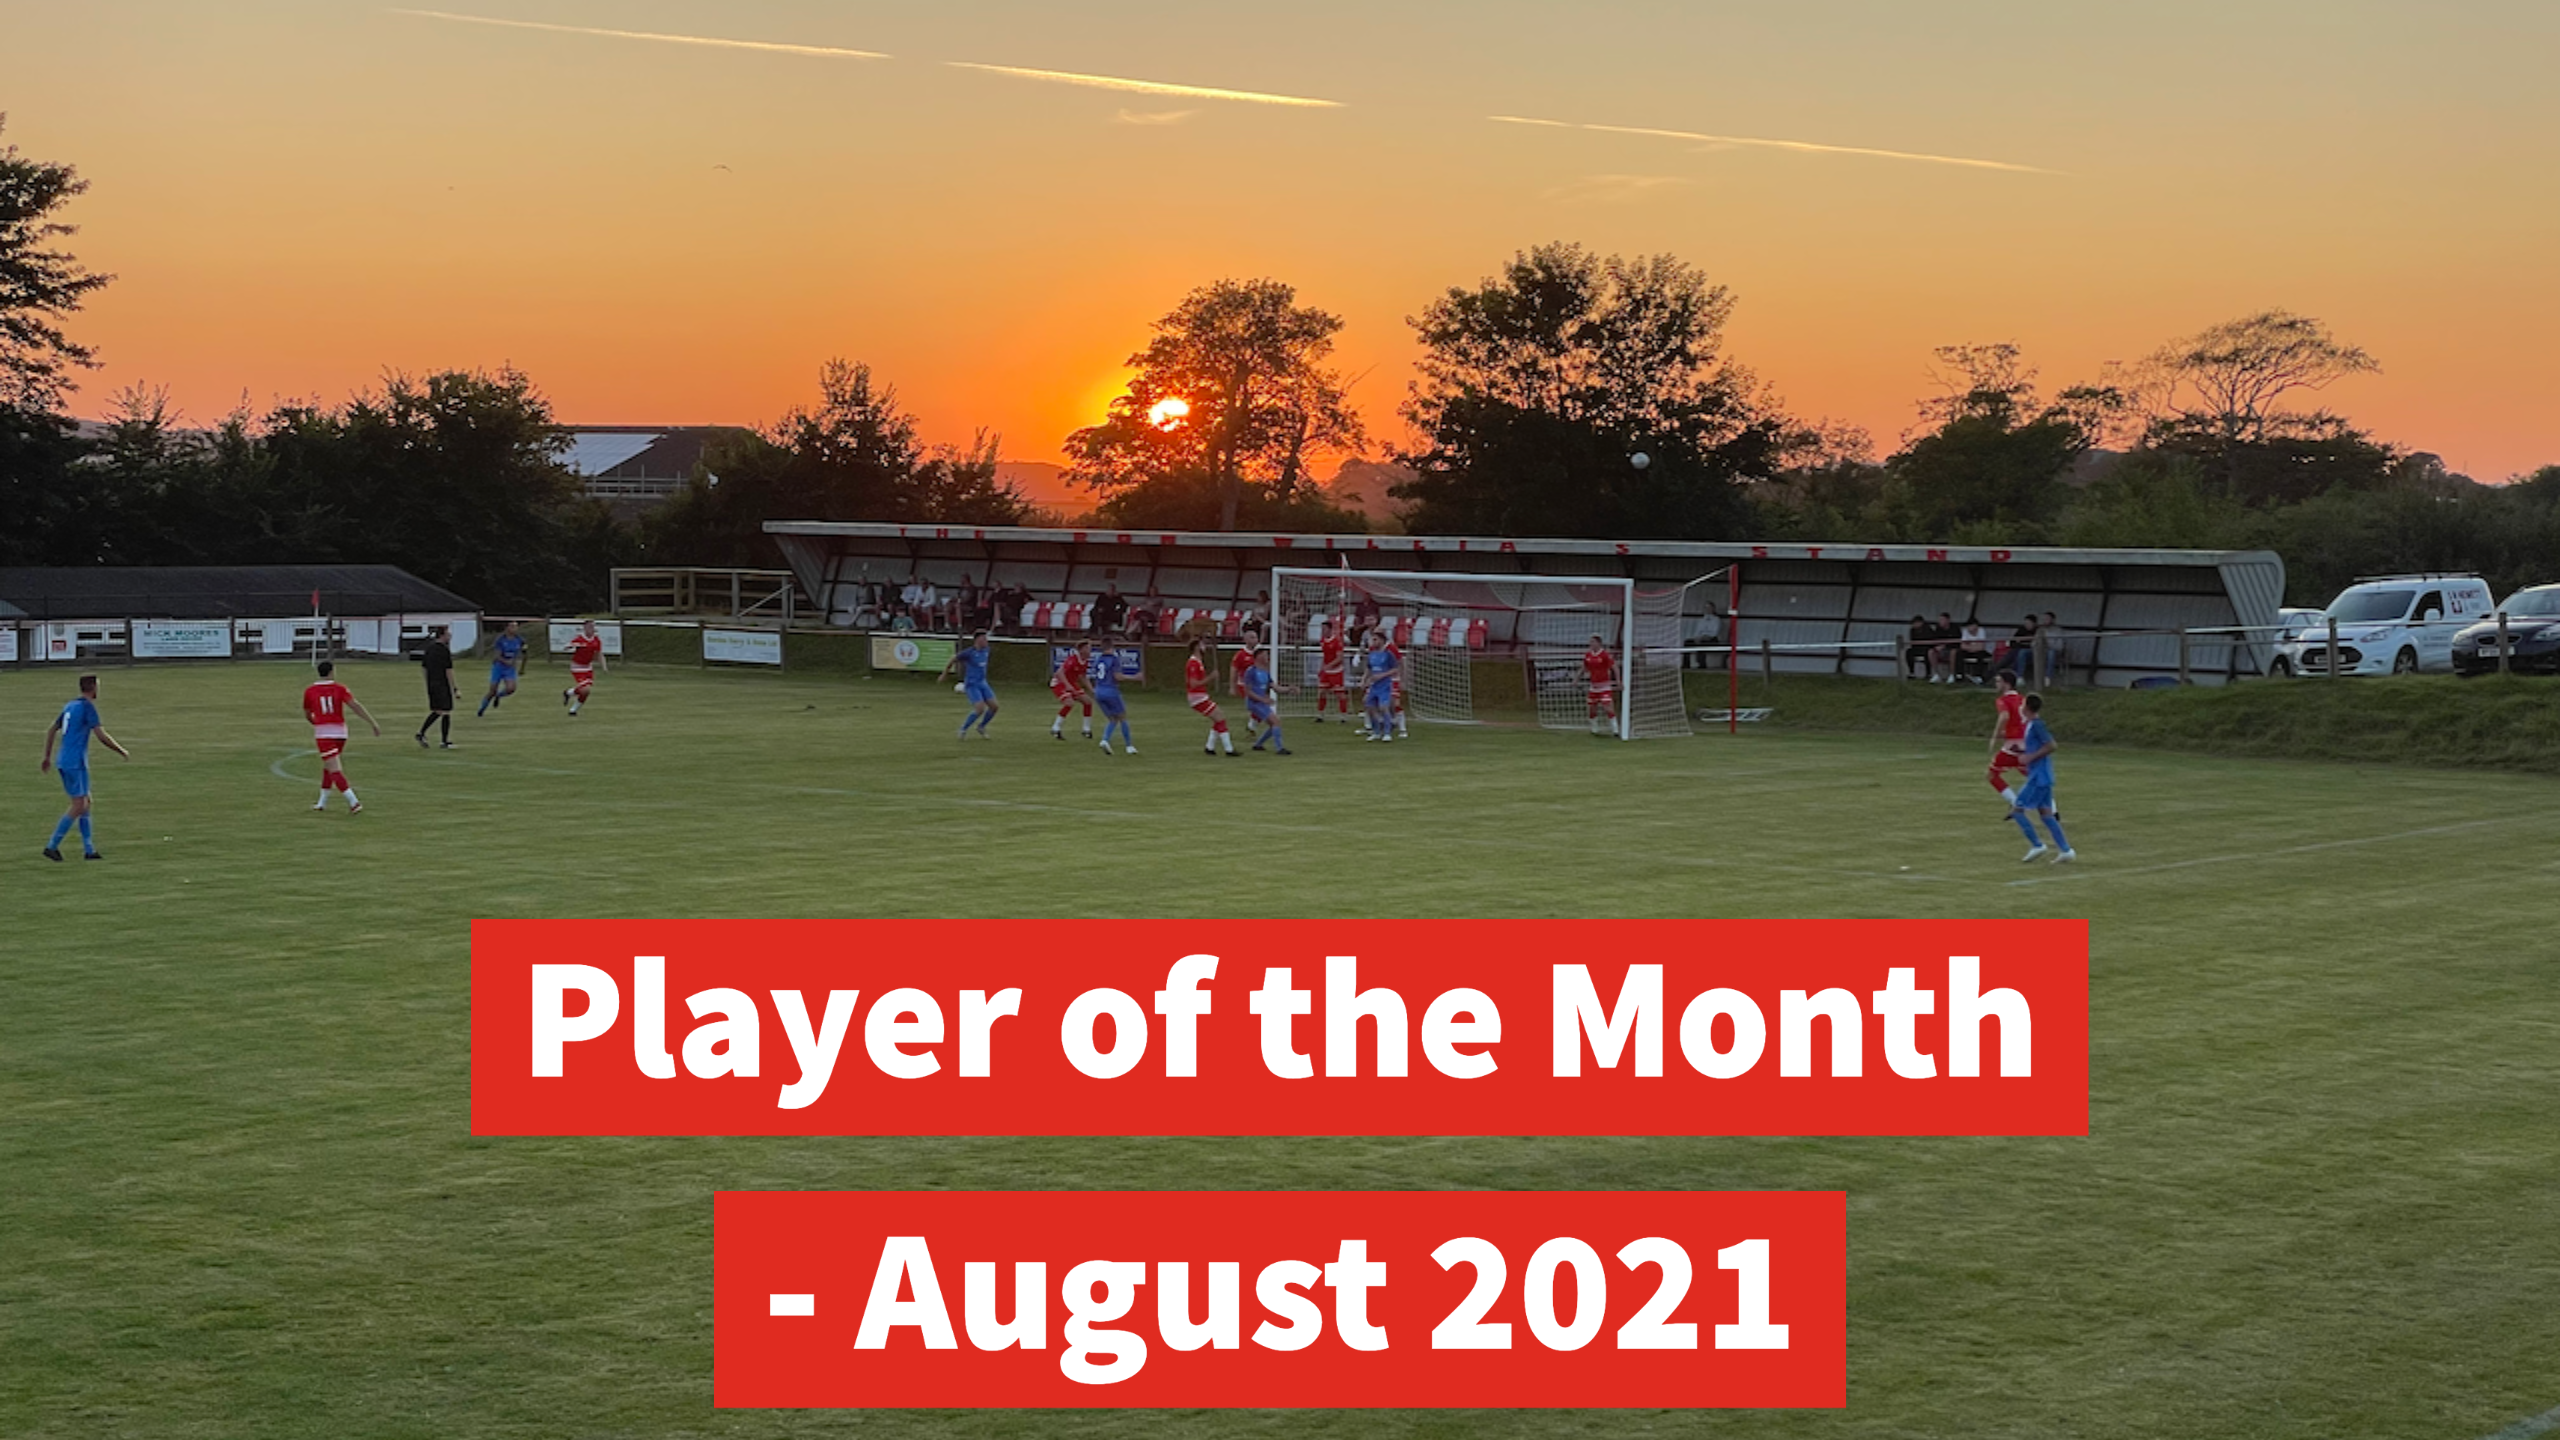 Player of the Month - August 2021